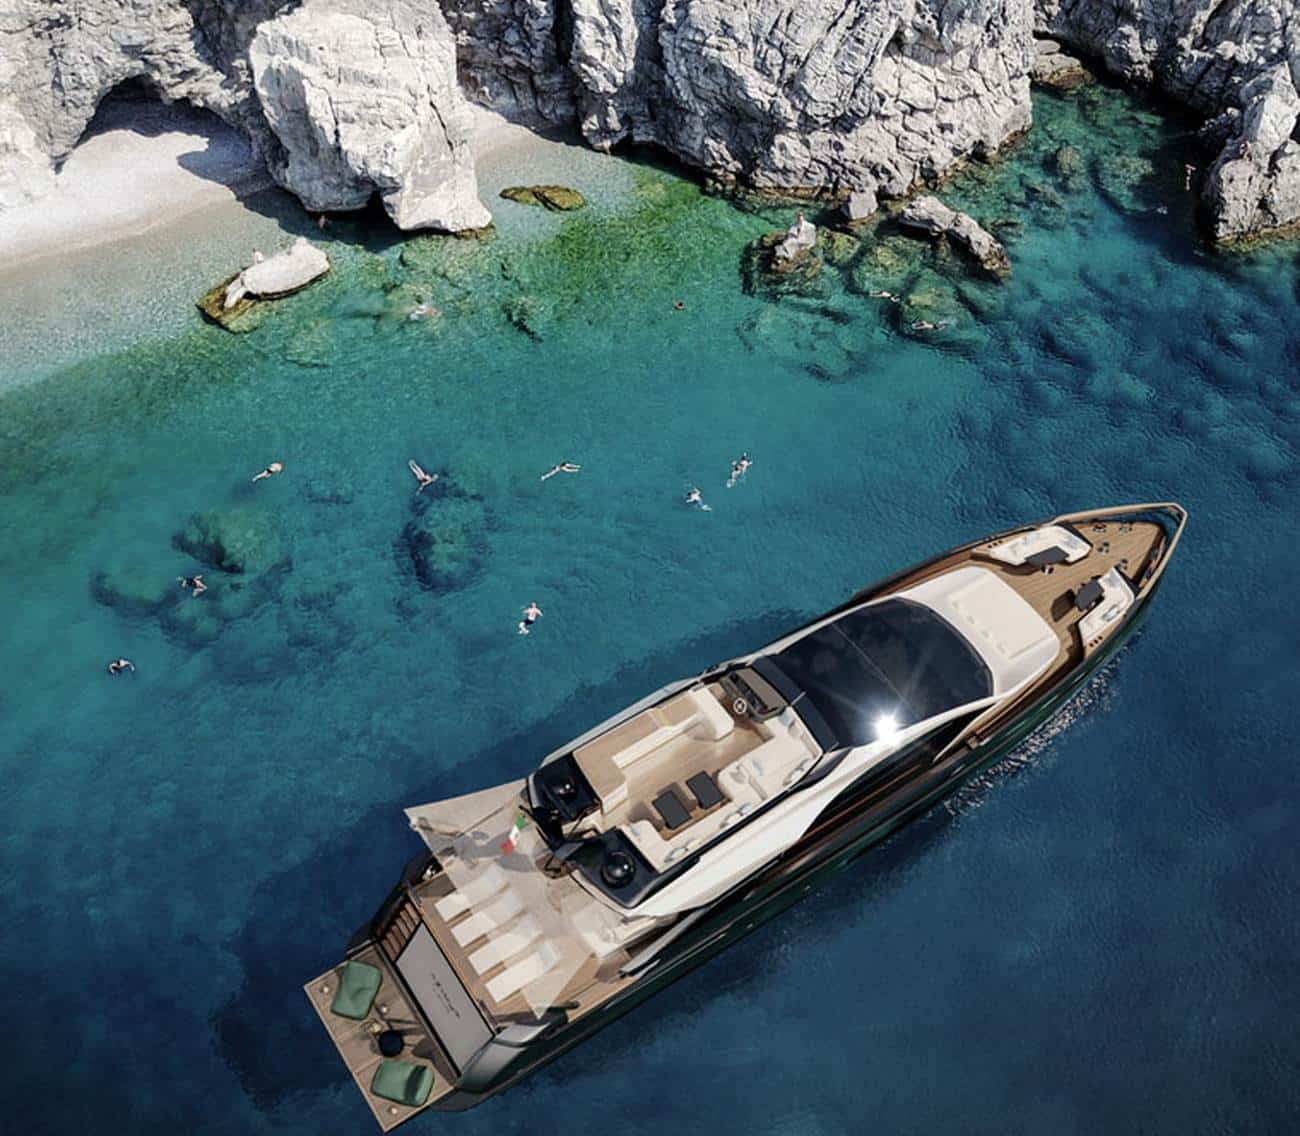 The Incredible Grande S10 is Azimut's Newest Superyacht